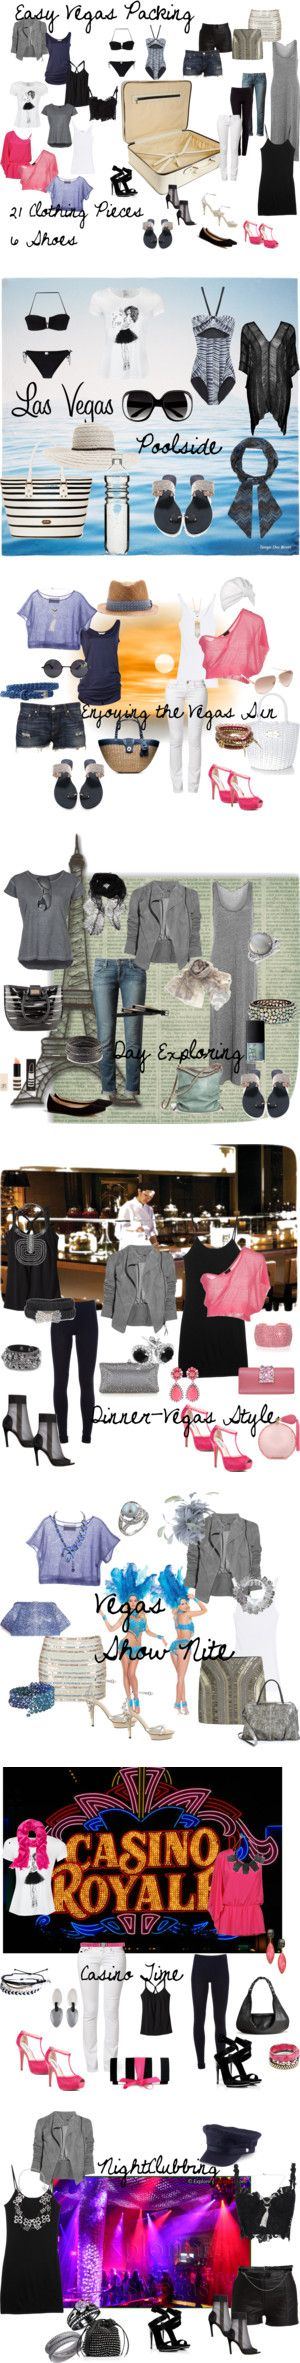 """Vegas Packing"" by atraub-1 on Polyvore"